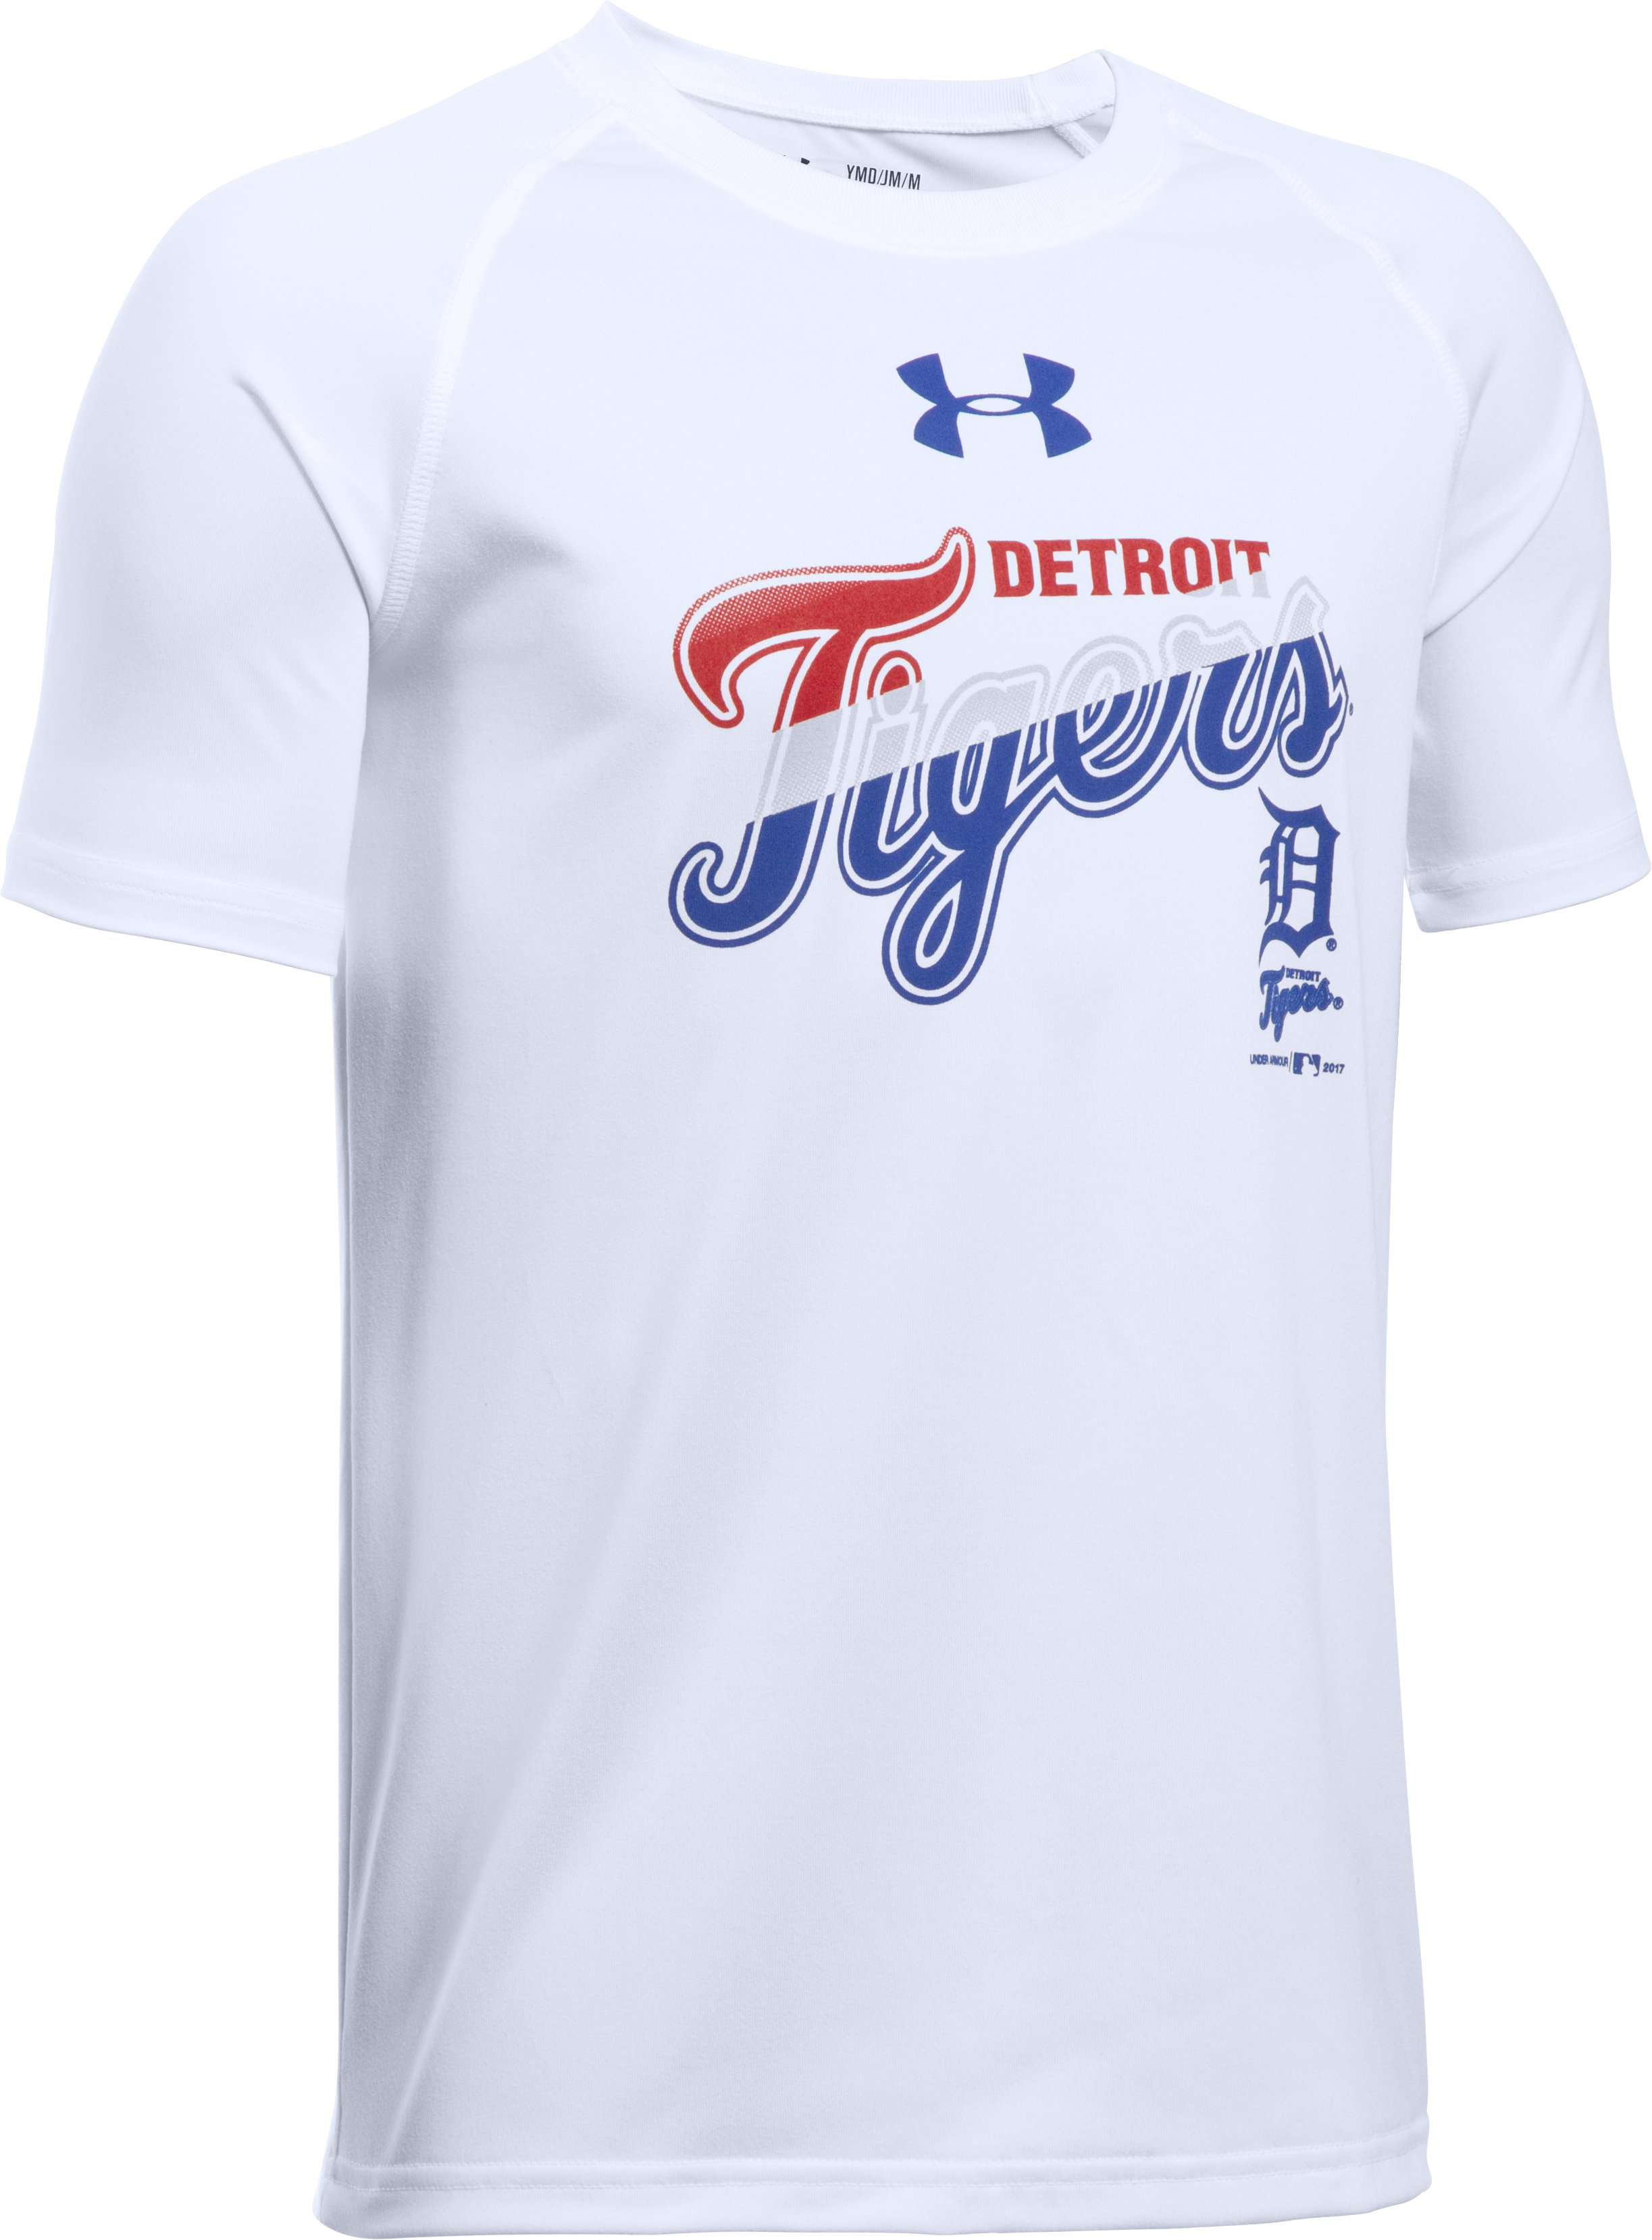 Boys' Detroit Tigers T-Shirt, White,